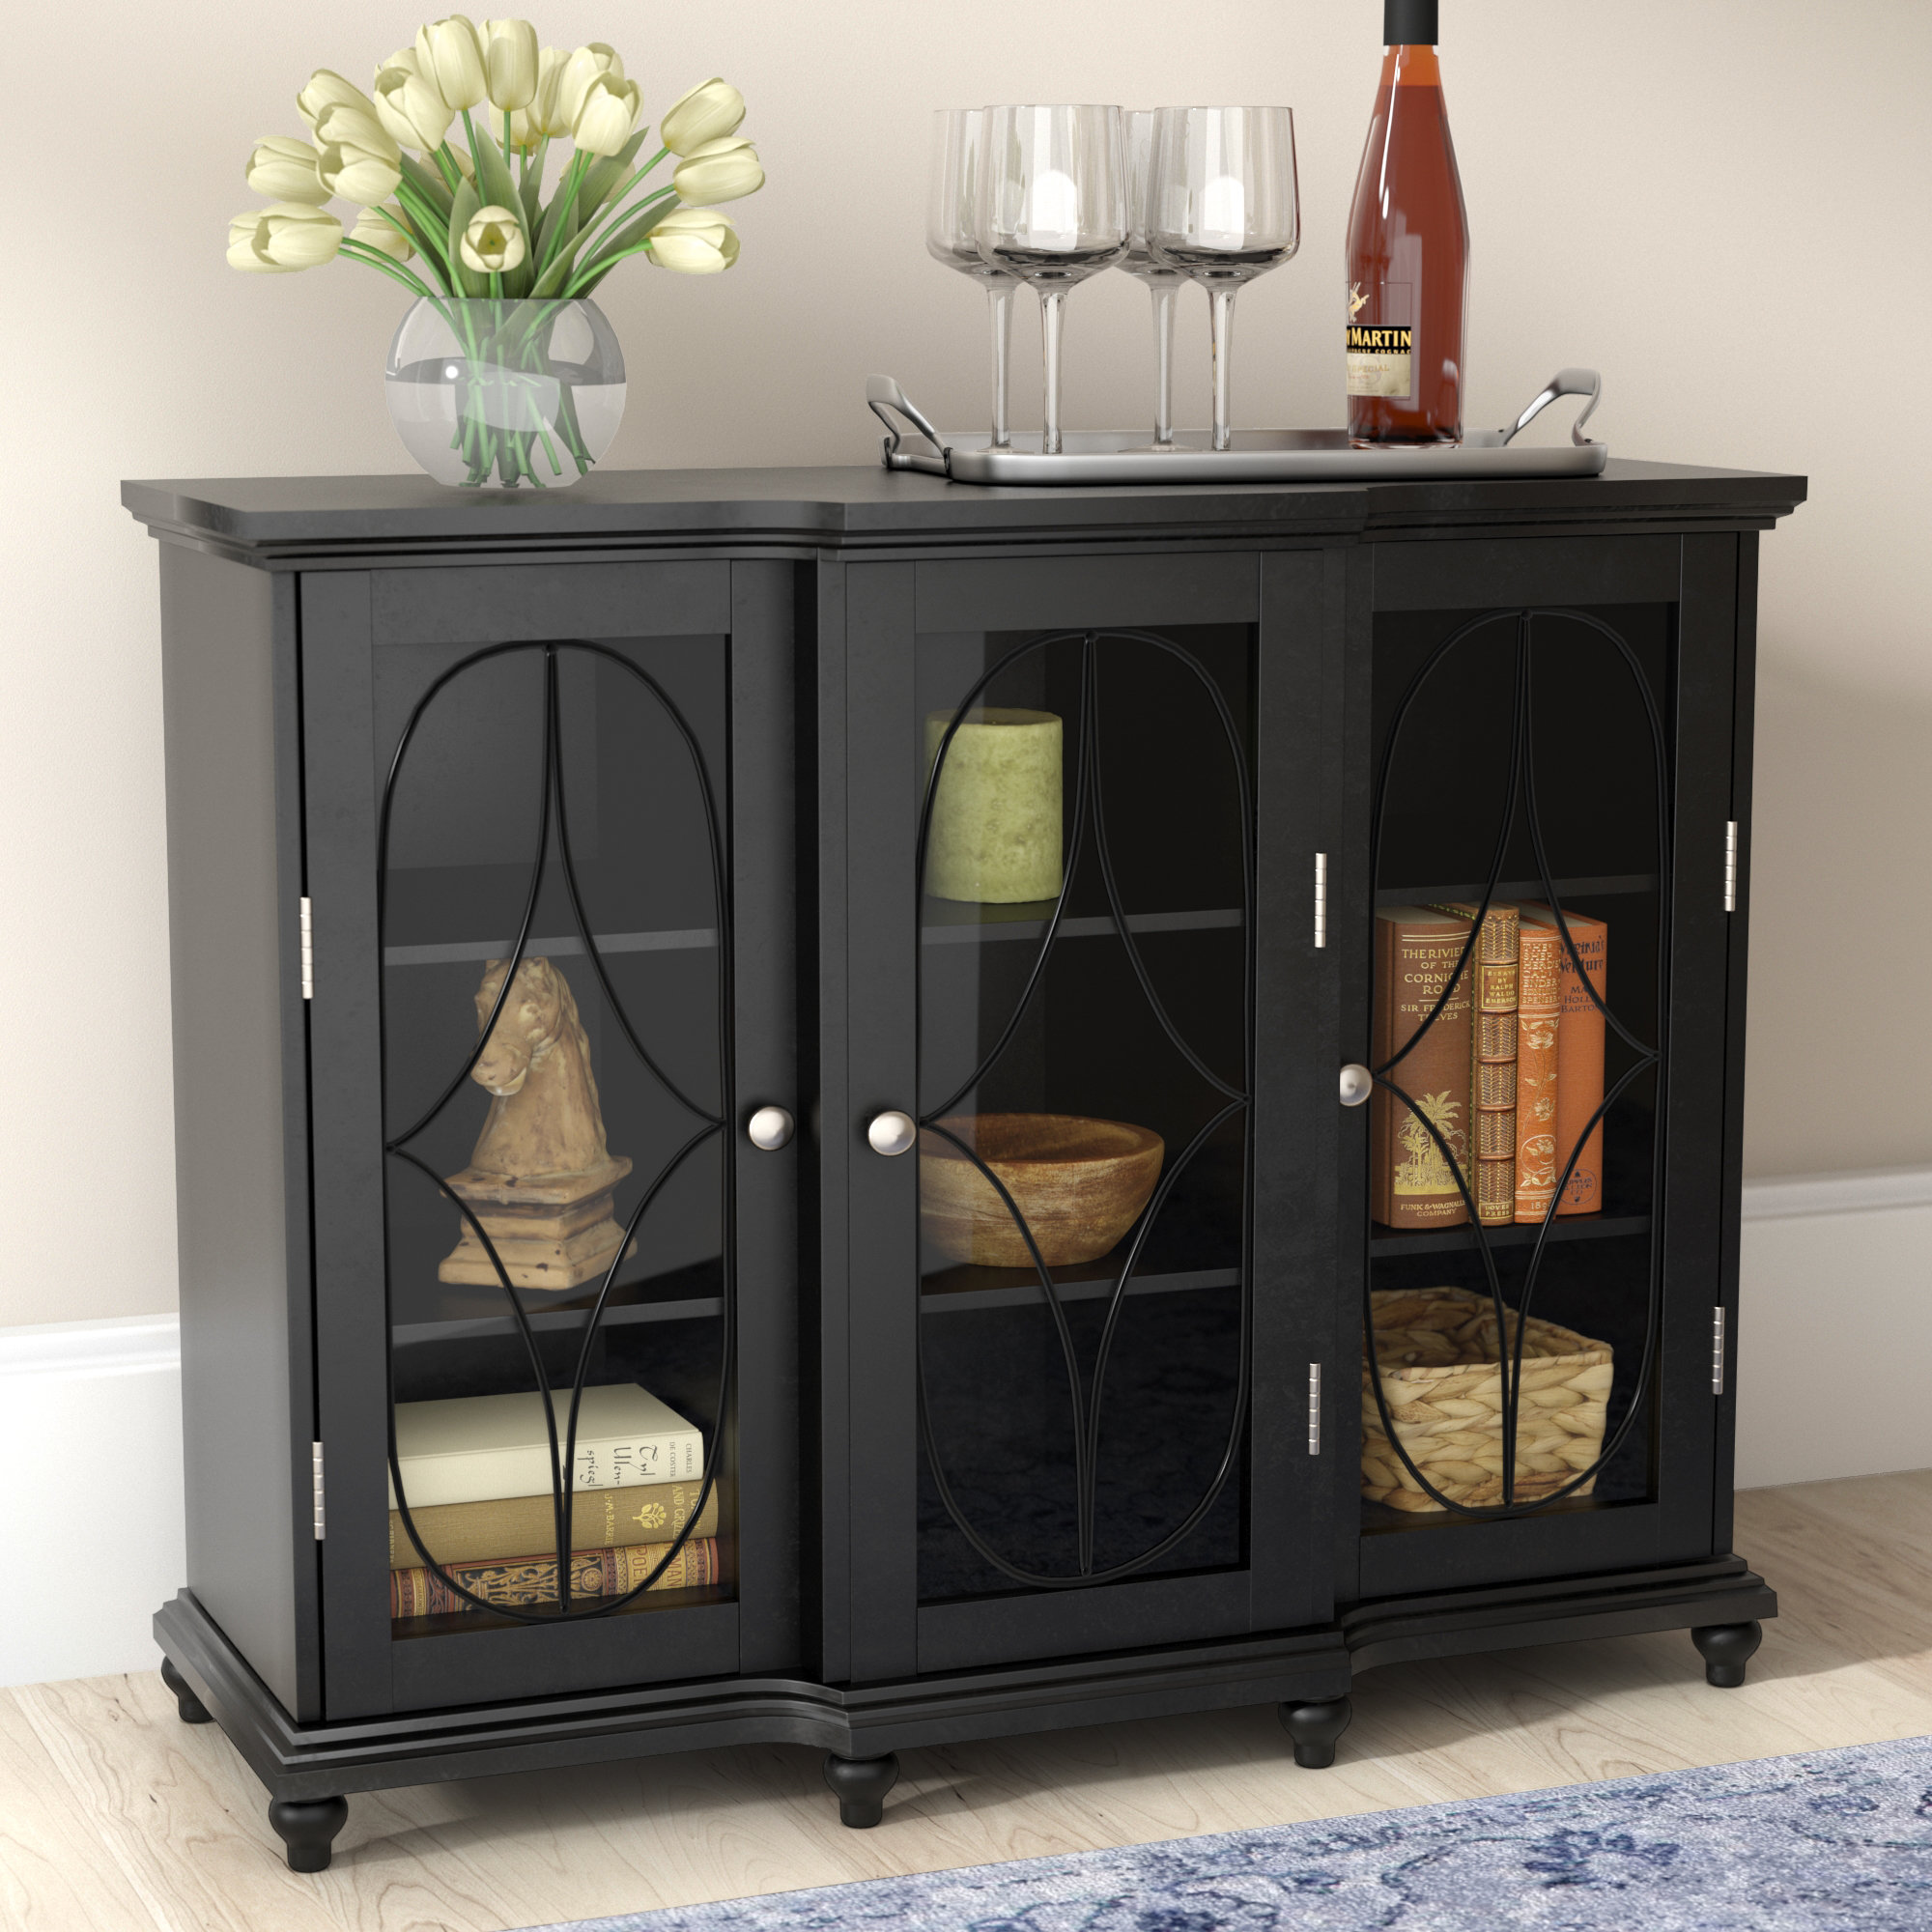 darby home odell doors accent cabinet reviews table with outdoor accents black leather dining room chairs ashley furniture chairside end miniature lamps xmas tablecloths and